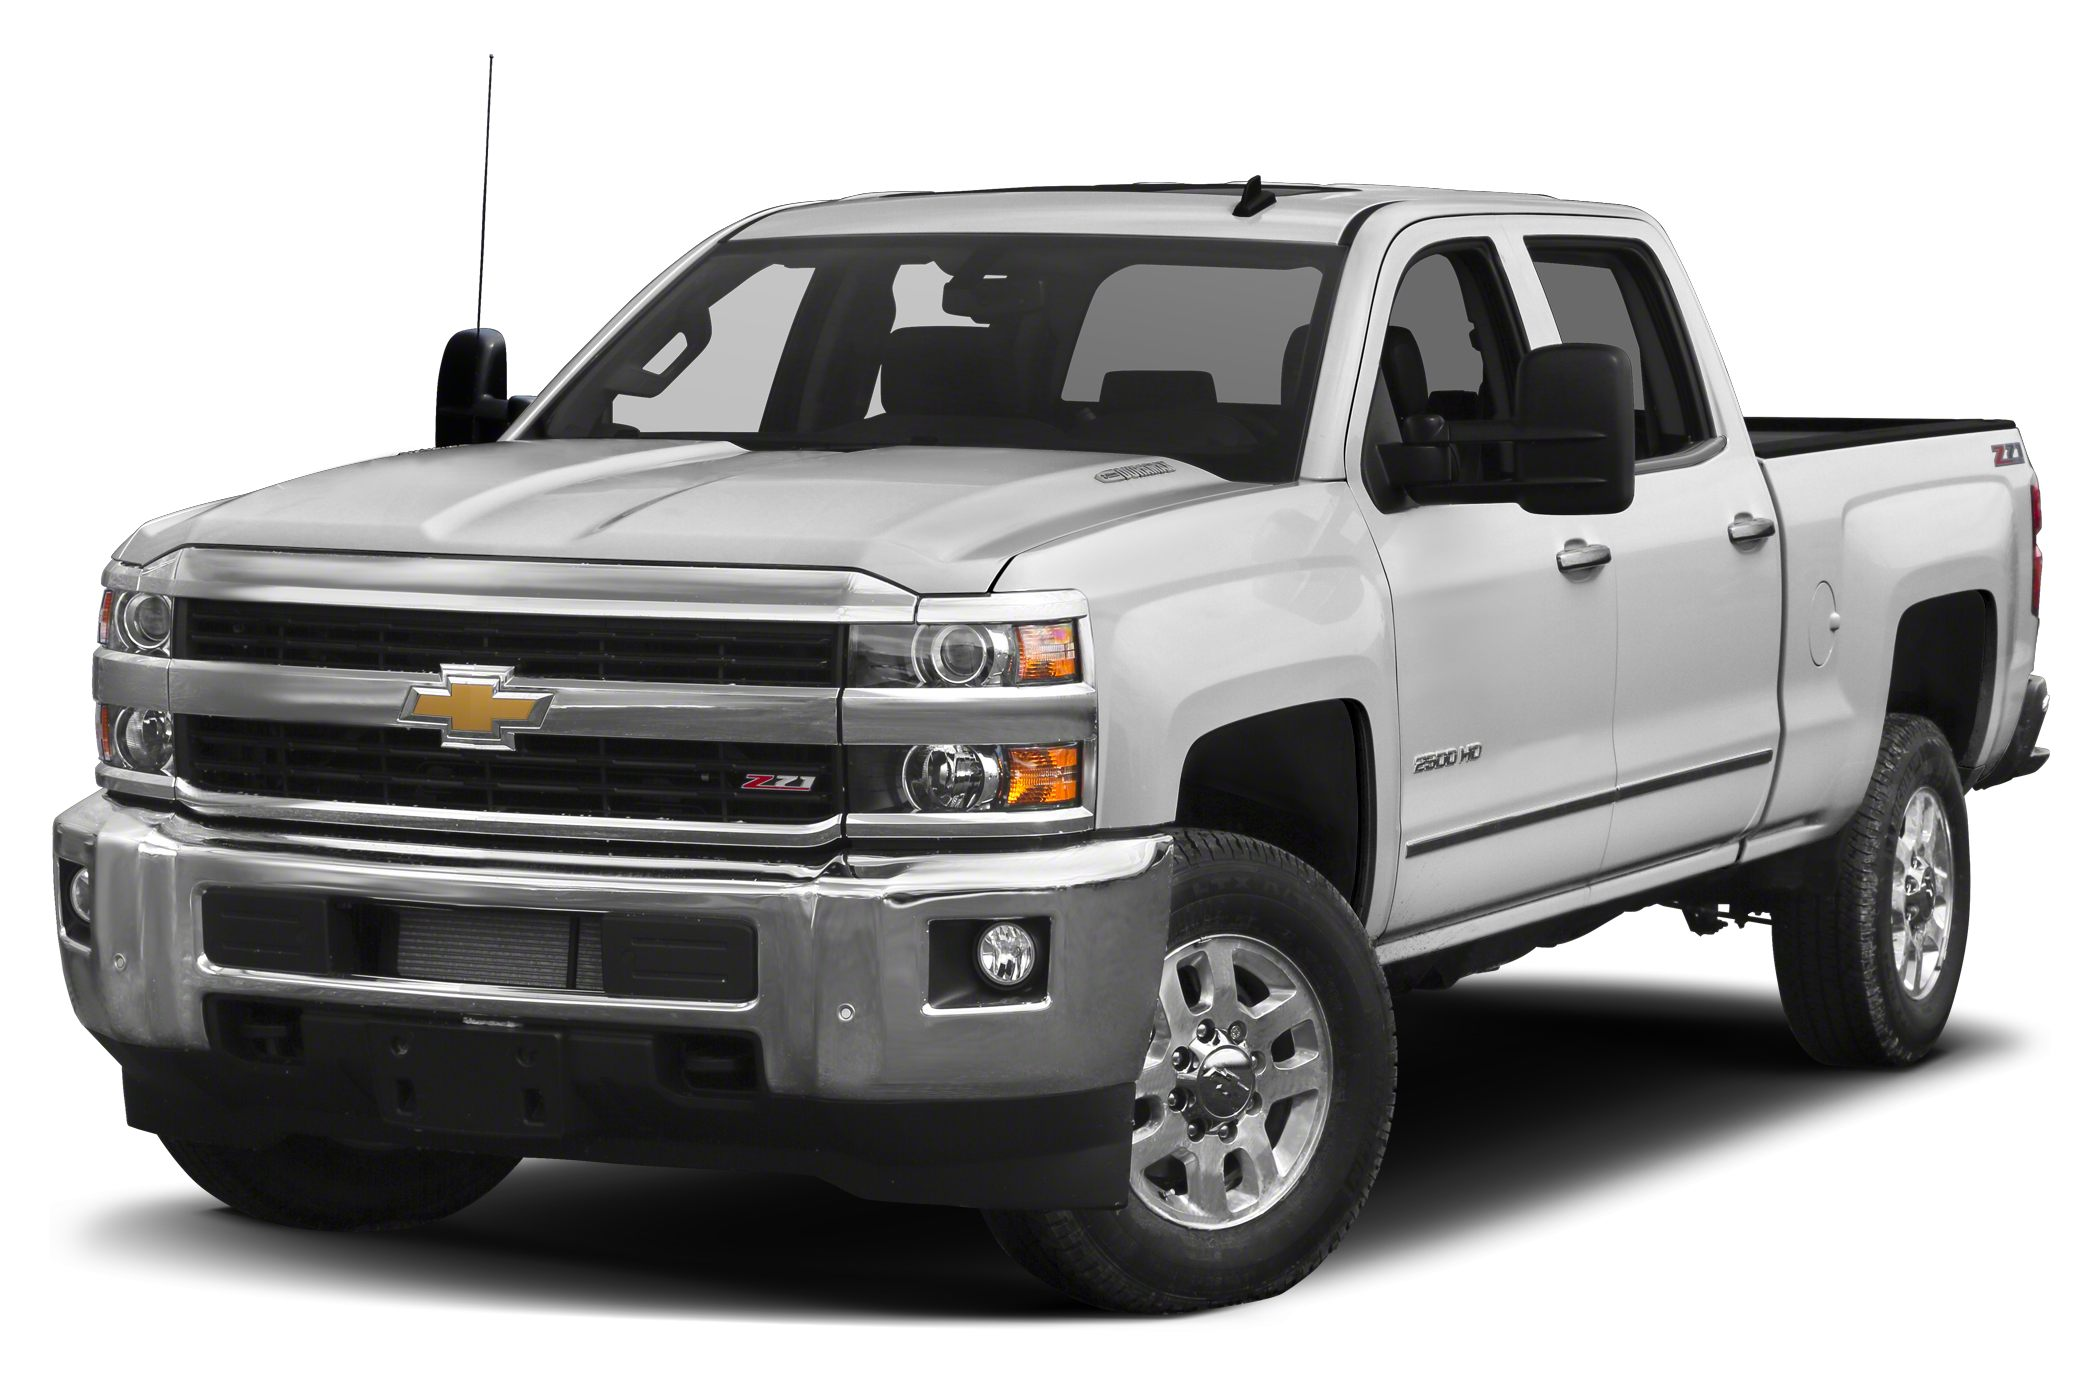 2018 Chevrolet Silverado 2500HD LTZ This LTZ is for Chevrolet enthusiasts the world over seeking a